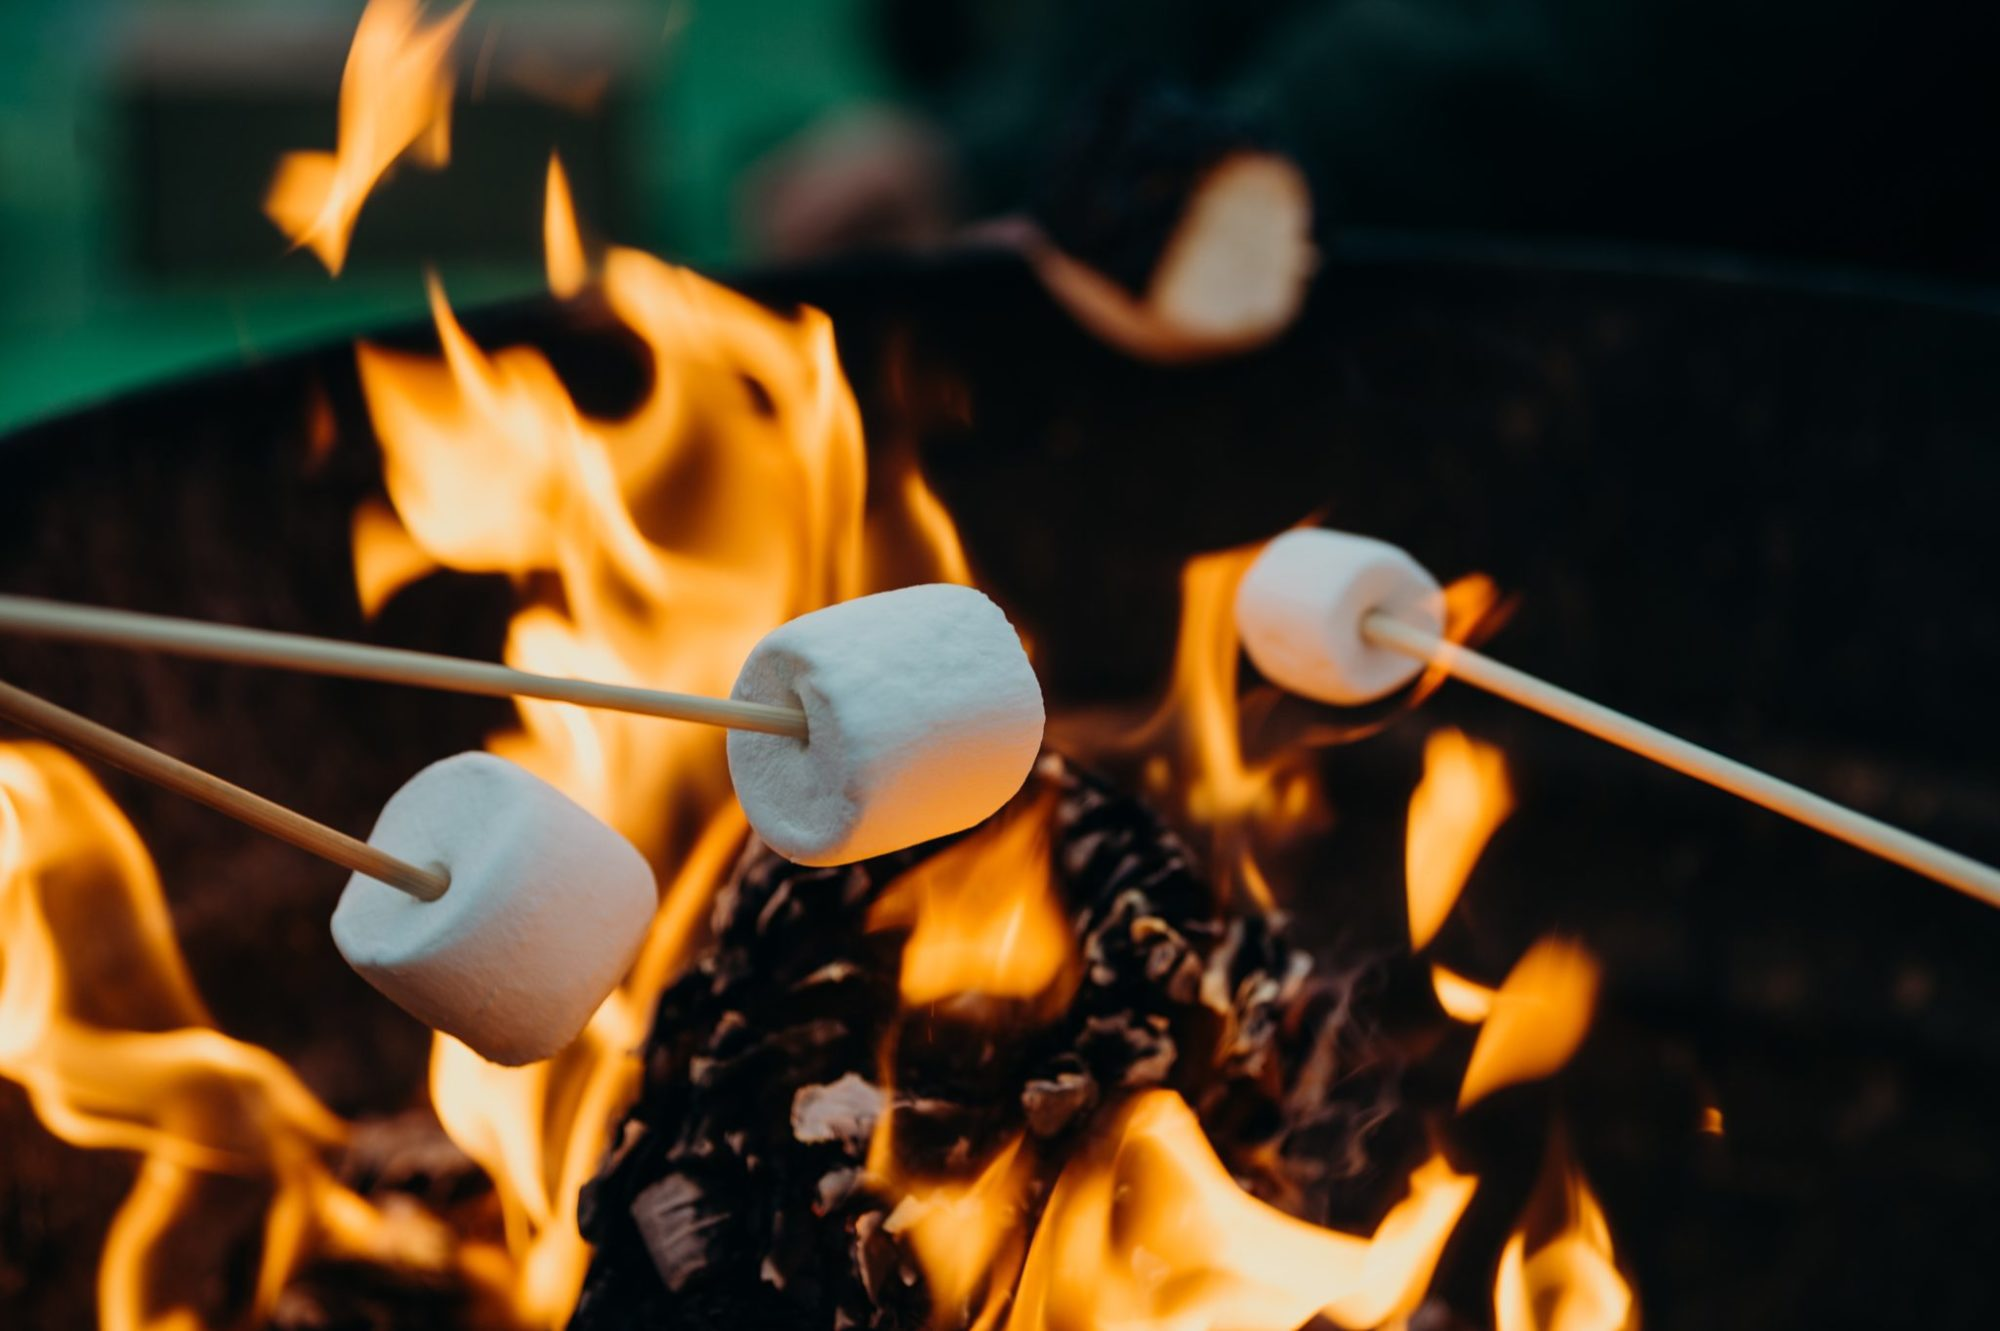 toasting marshmallows over fire